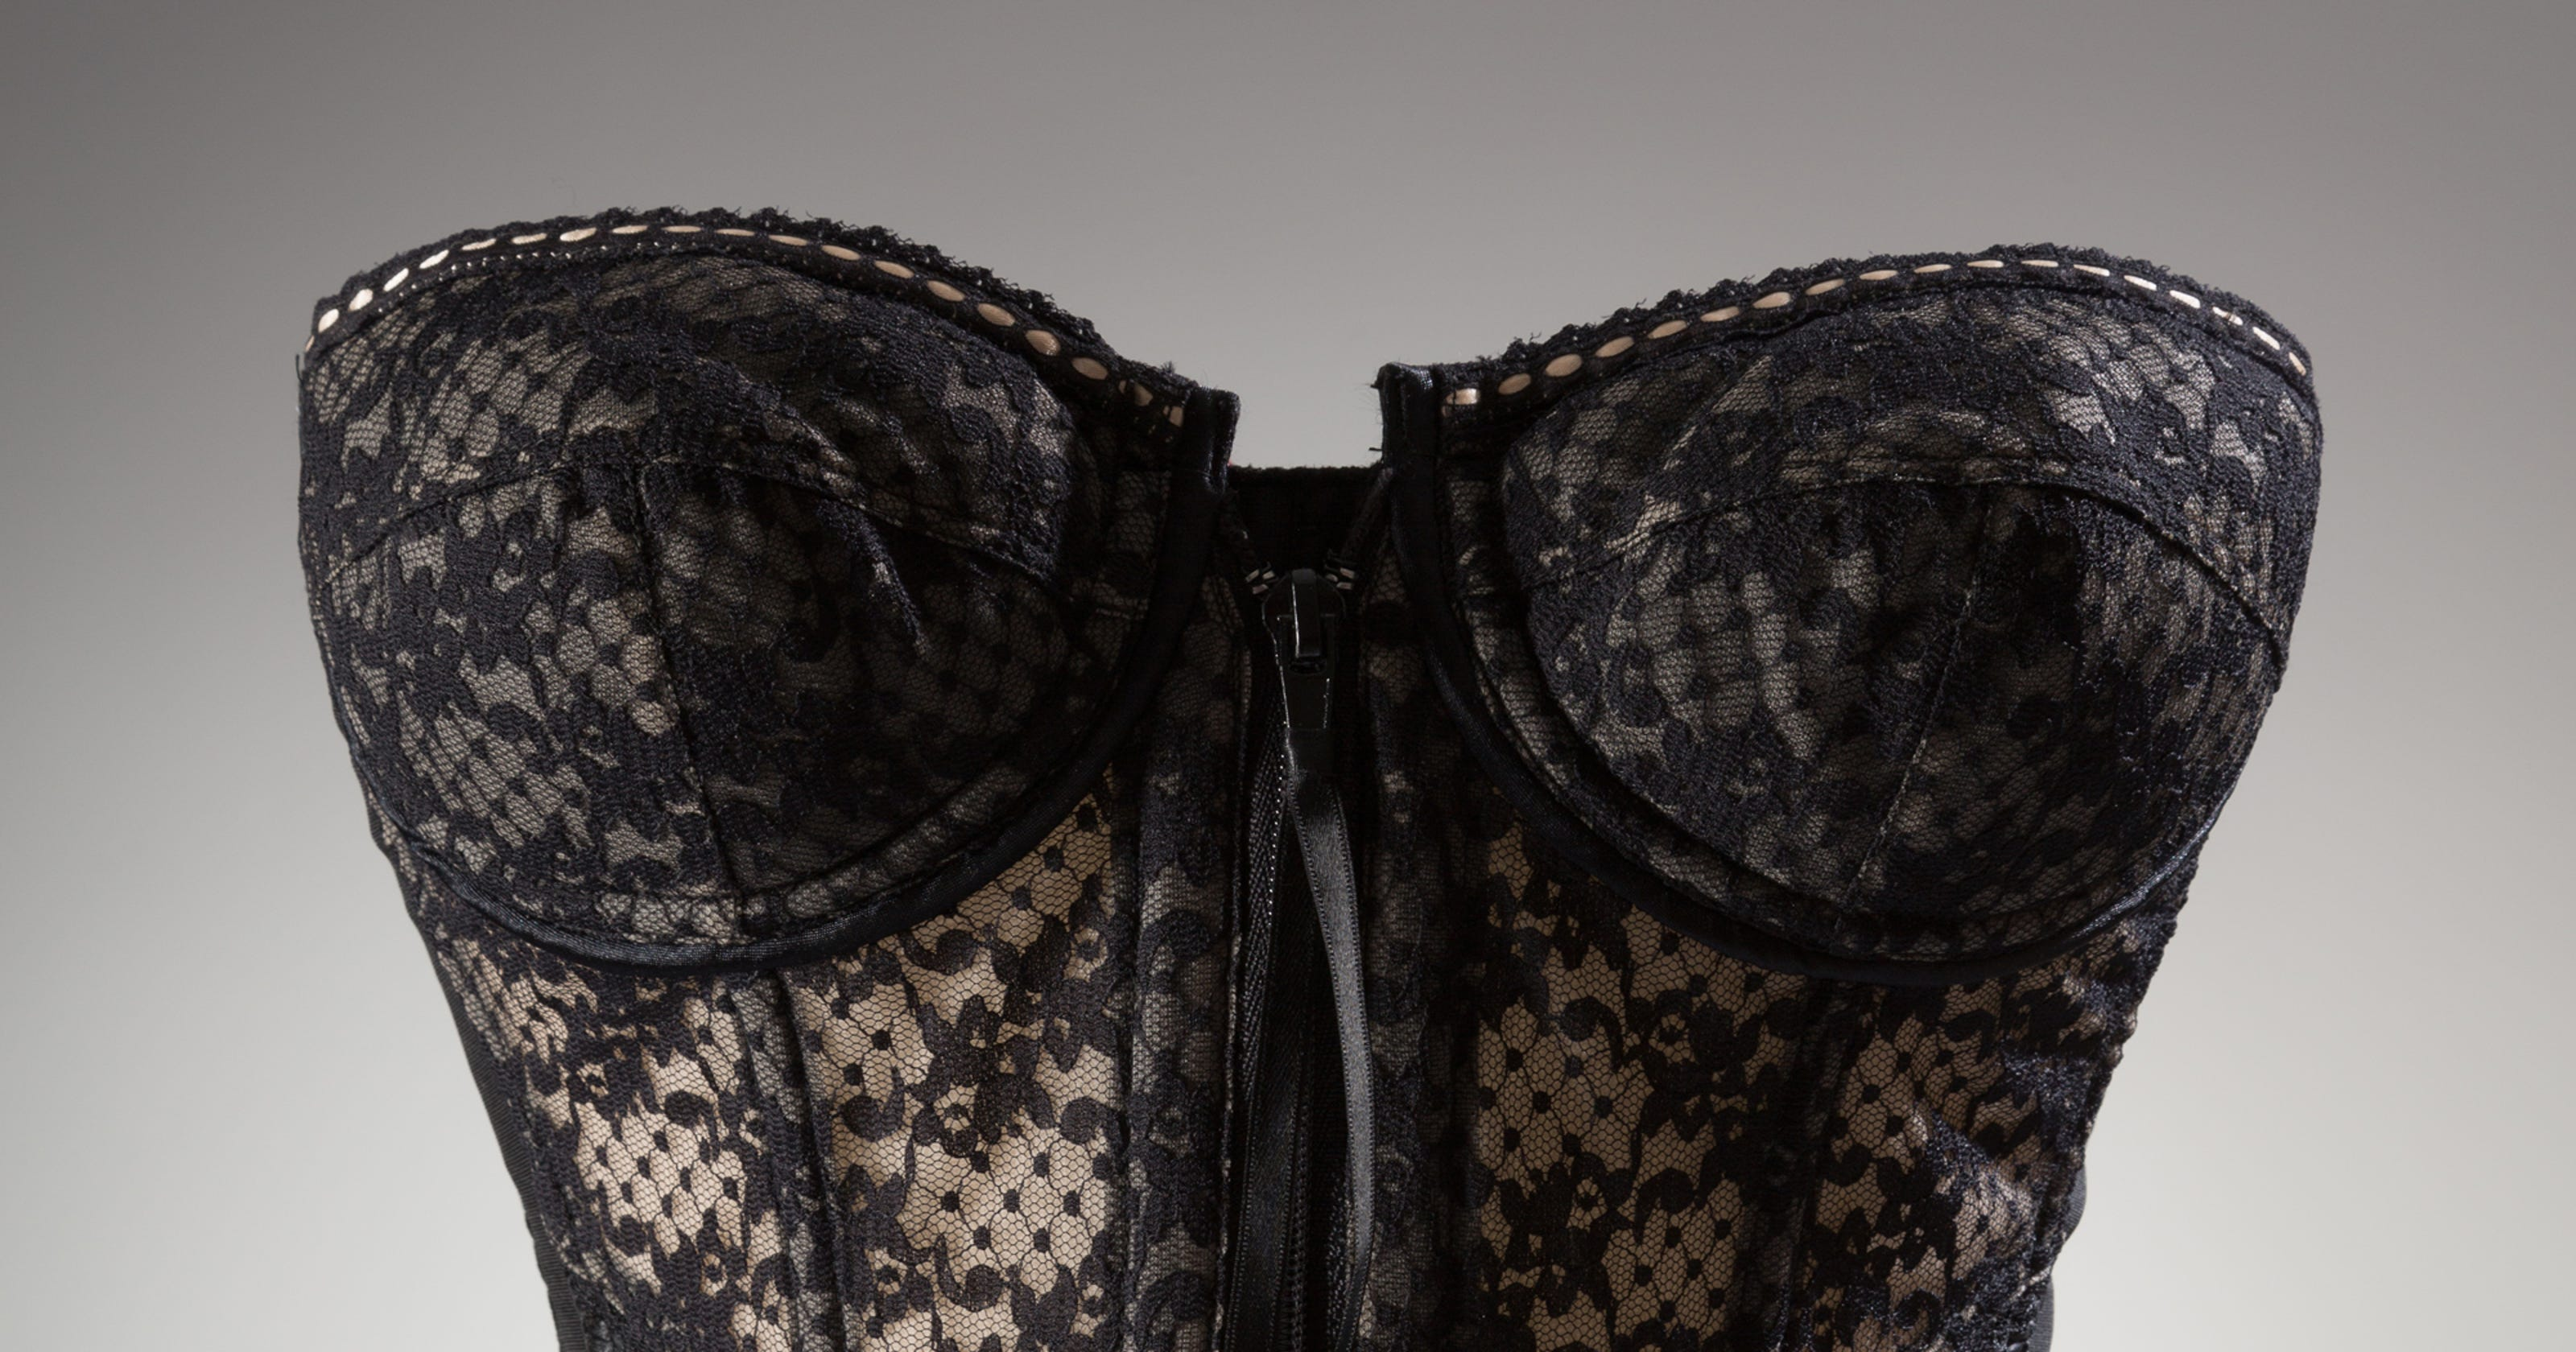 Corsets to Wonderbras: Museum takes on lingerie